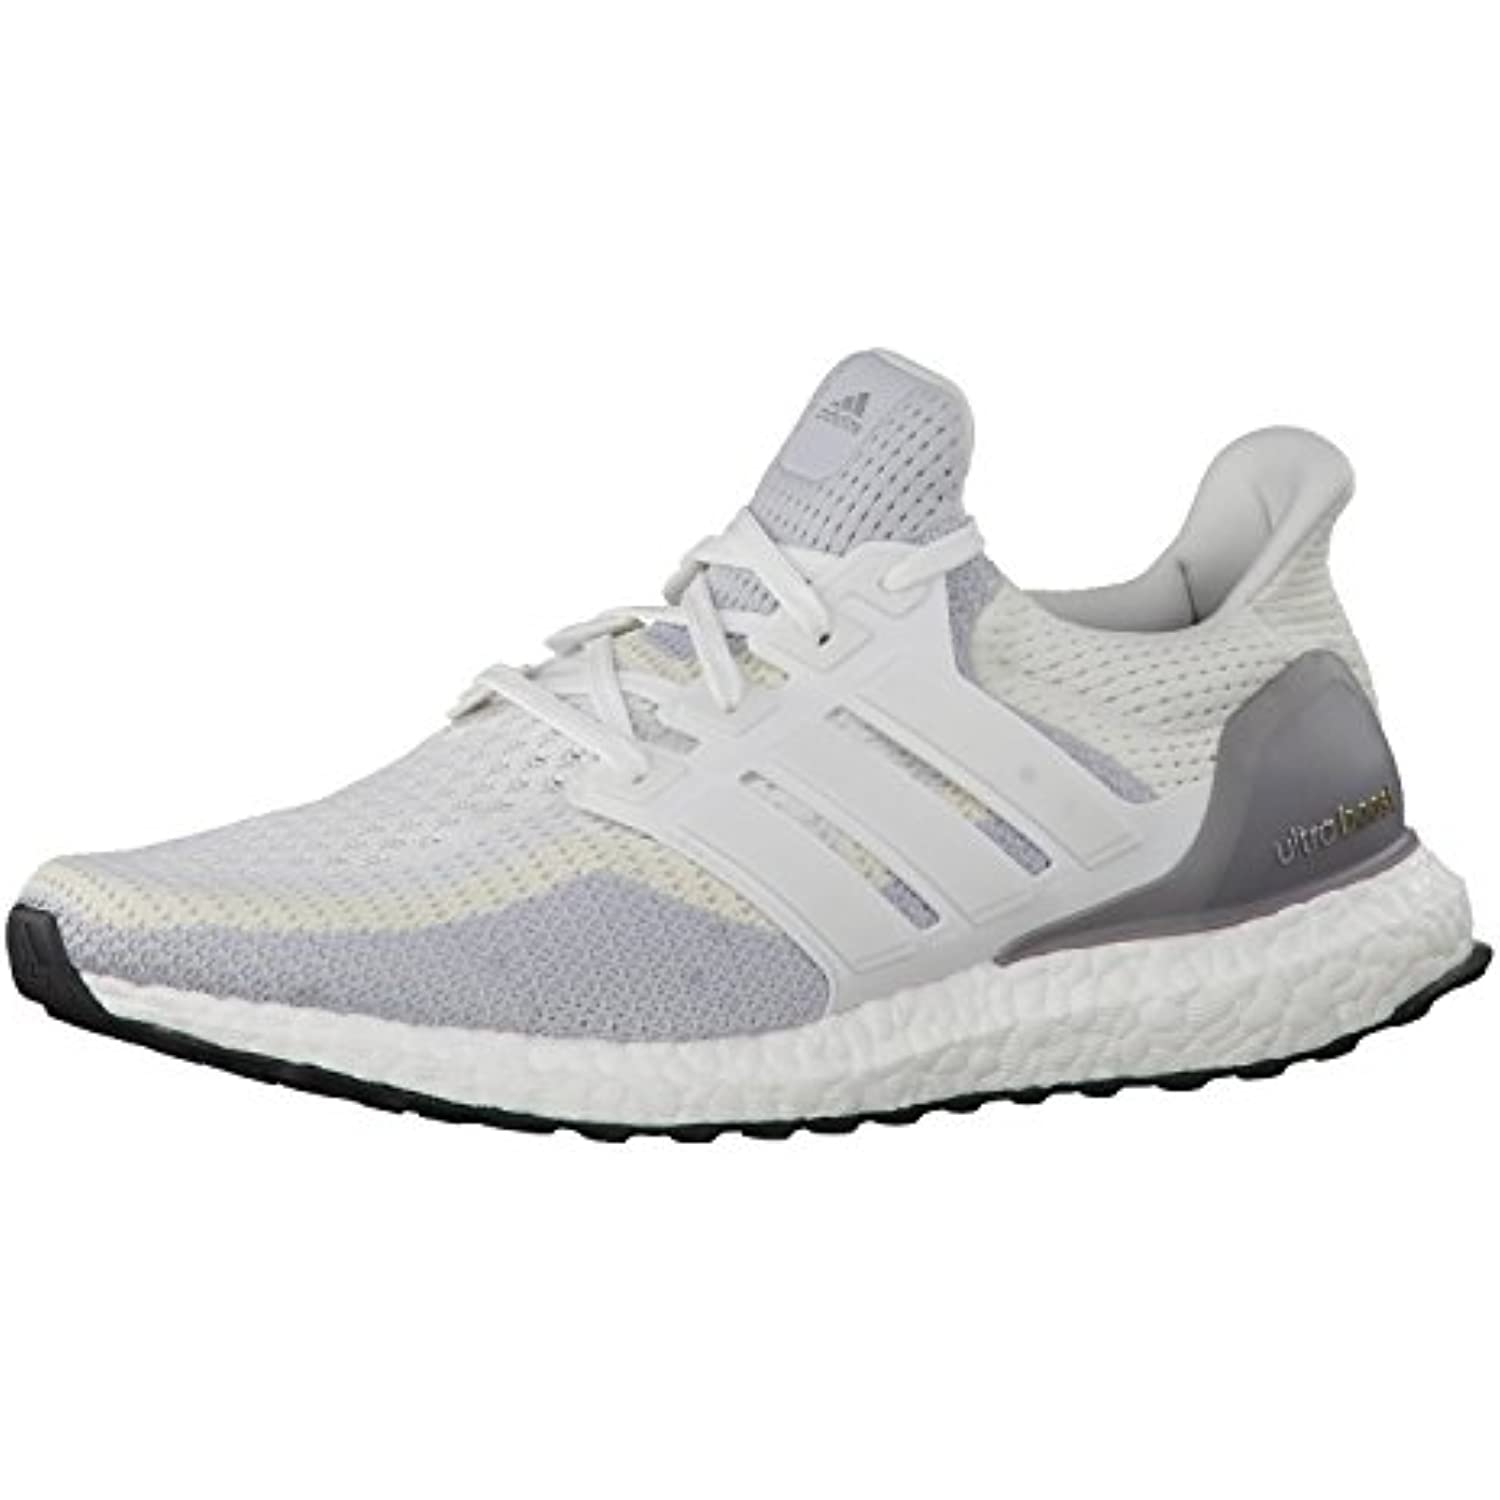 half off a3214 0529c Adidas Ultra Boost, Chaussures de Running EntraineHommes t Homme Homme Homme  - B0155DT9D0 - 29c26e